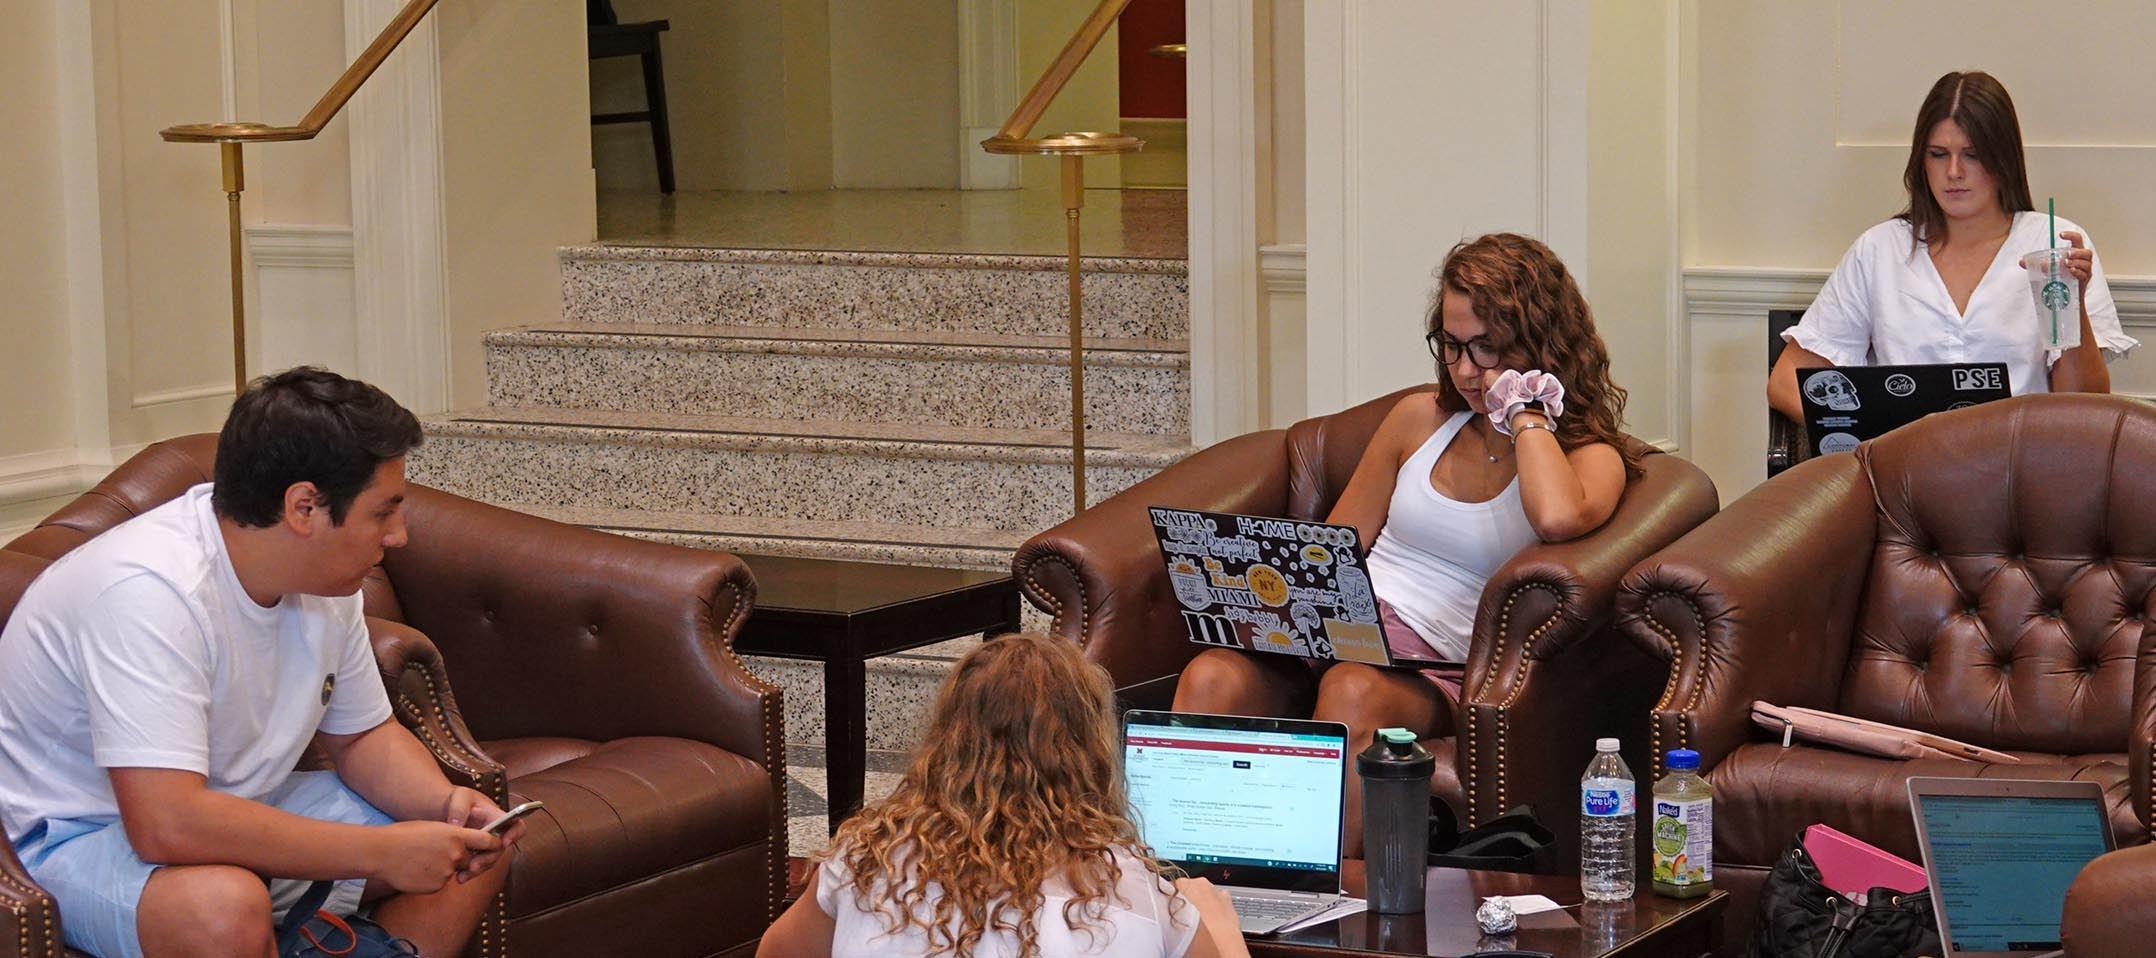 Students hang out in Forsythe Commons